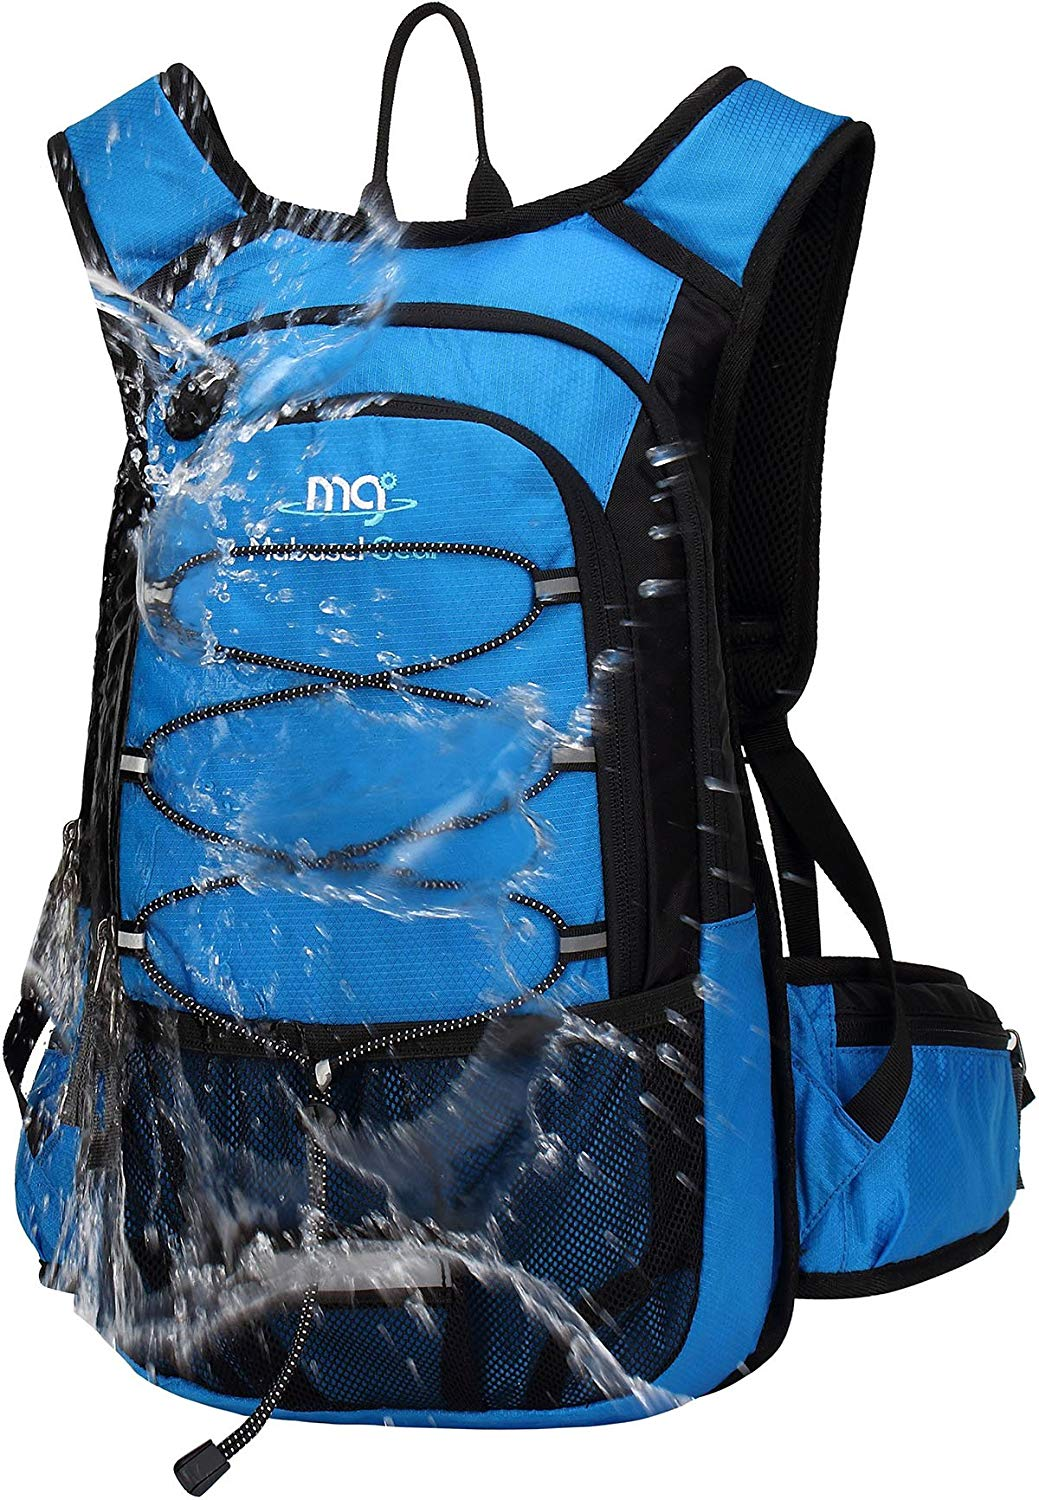 Mubasel Gear Insulated Hydration Backpack Pack with 2L BPA Free Bladder